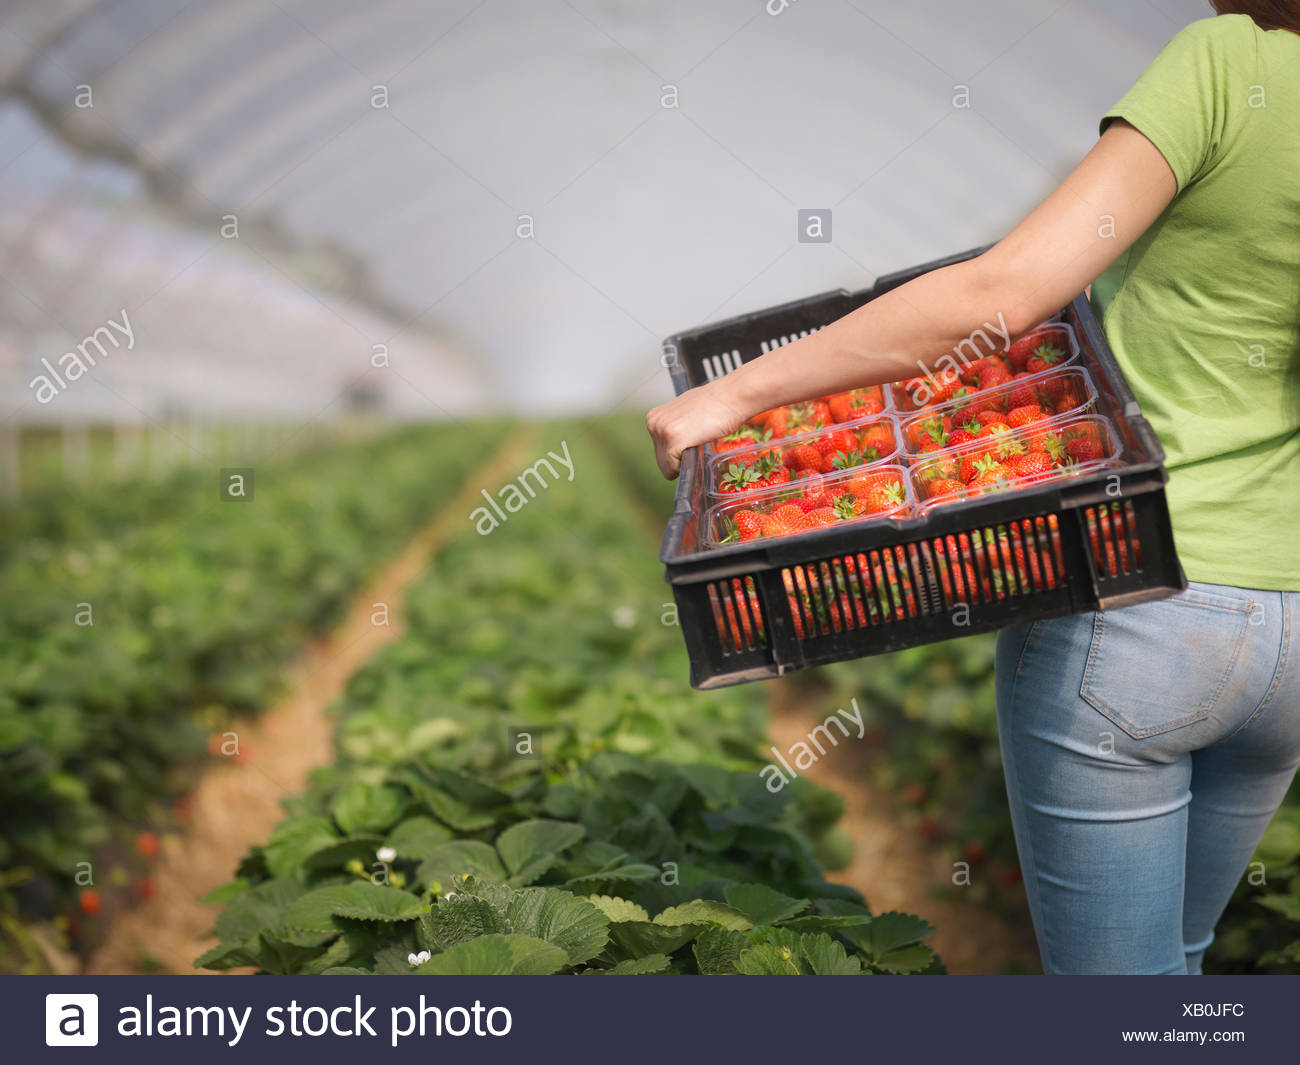 Worker carrying tray of punnets filled with strawberries in polytunnel of fruit farm - Stock Image